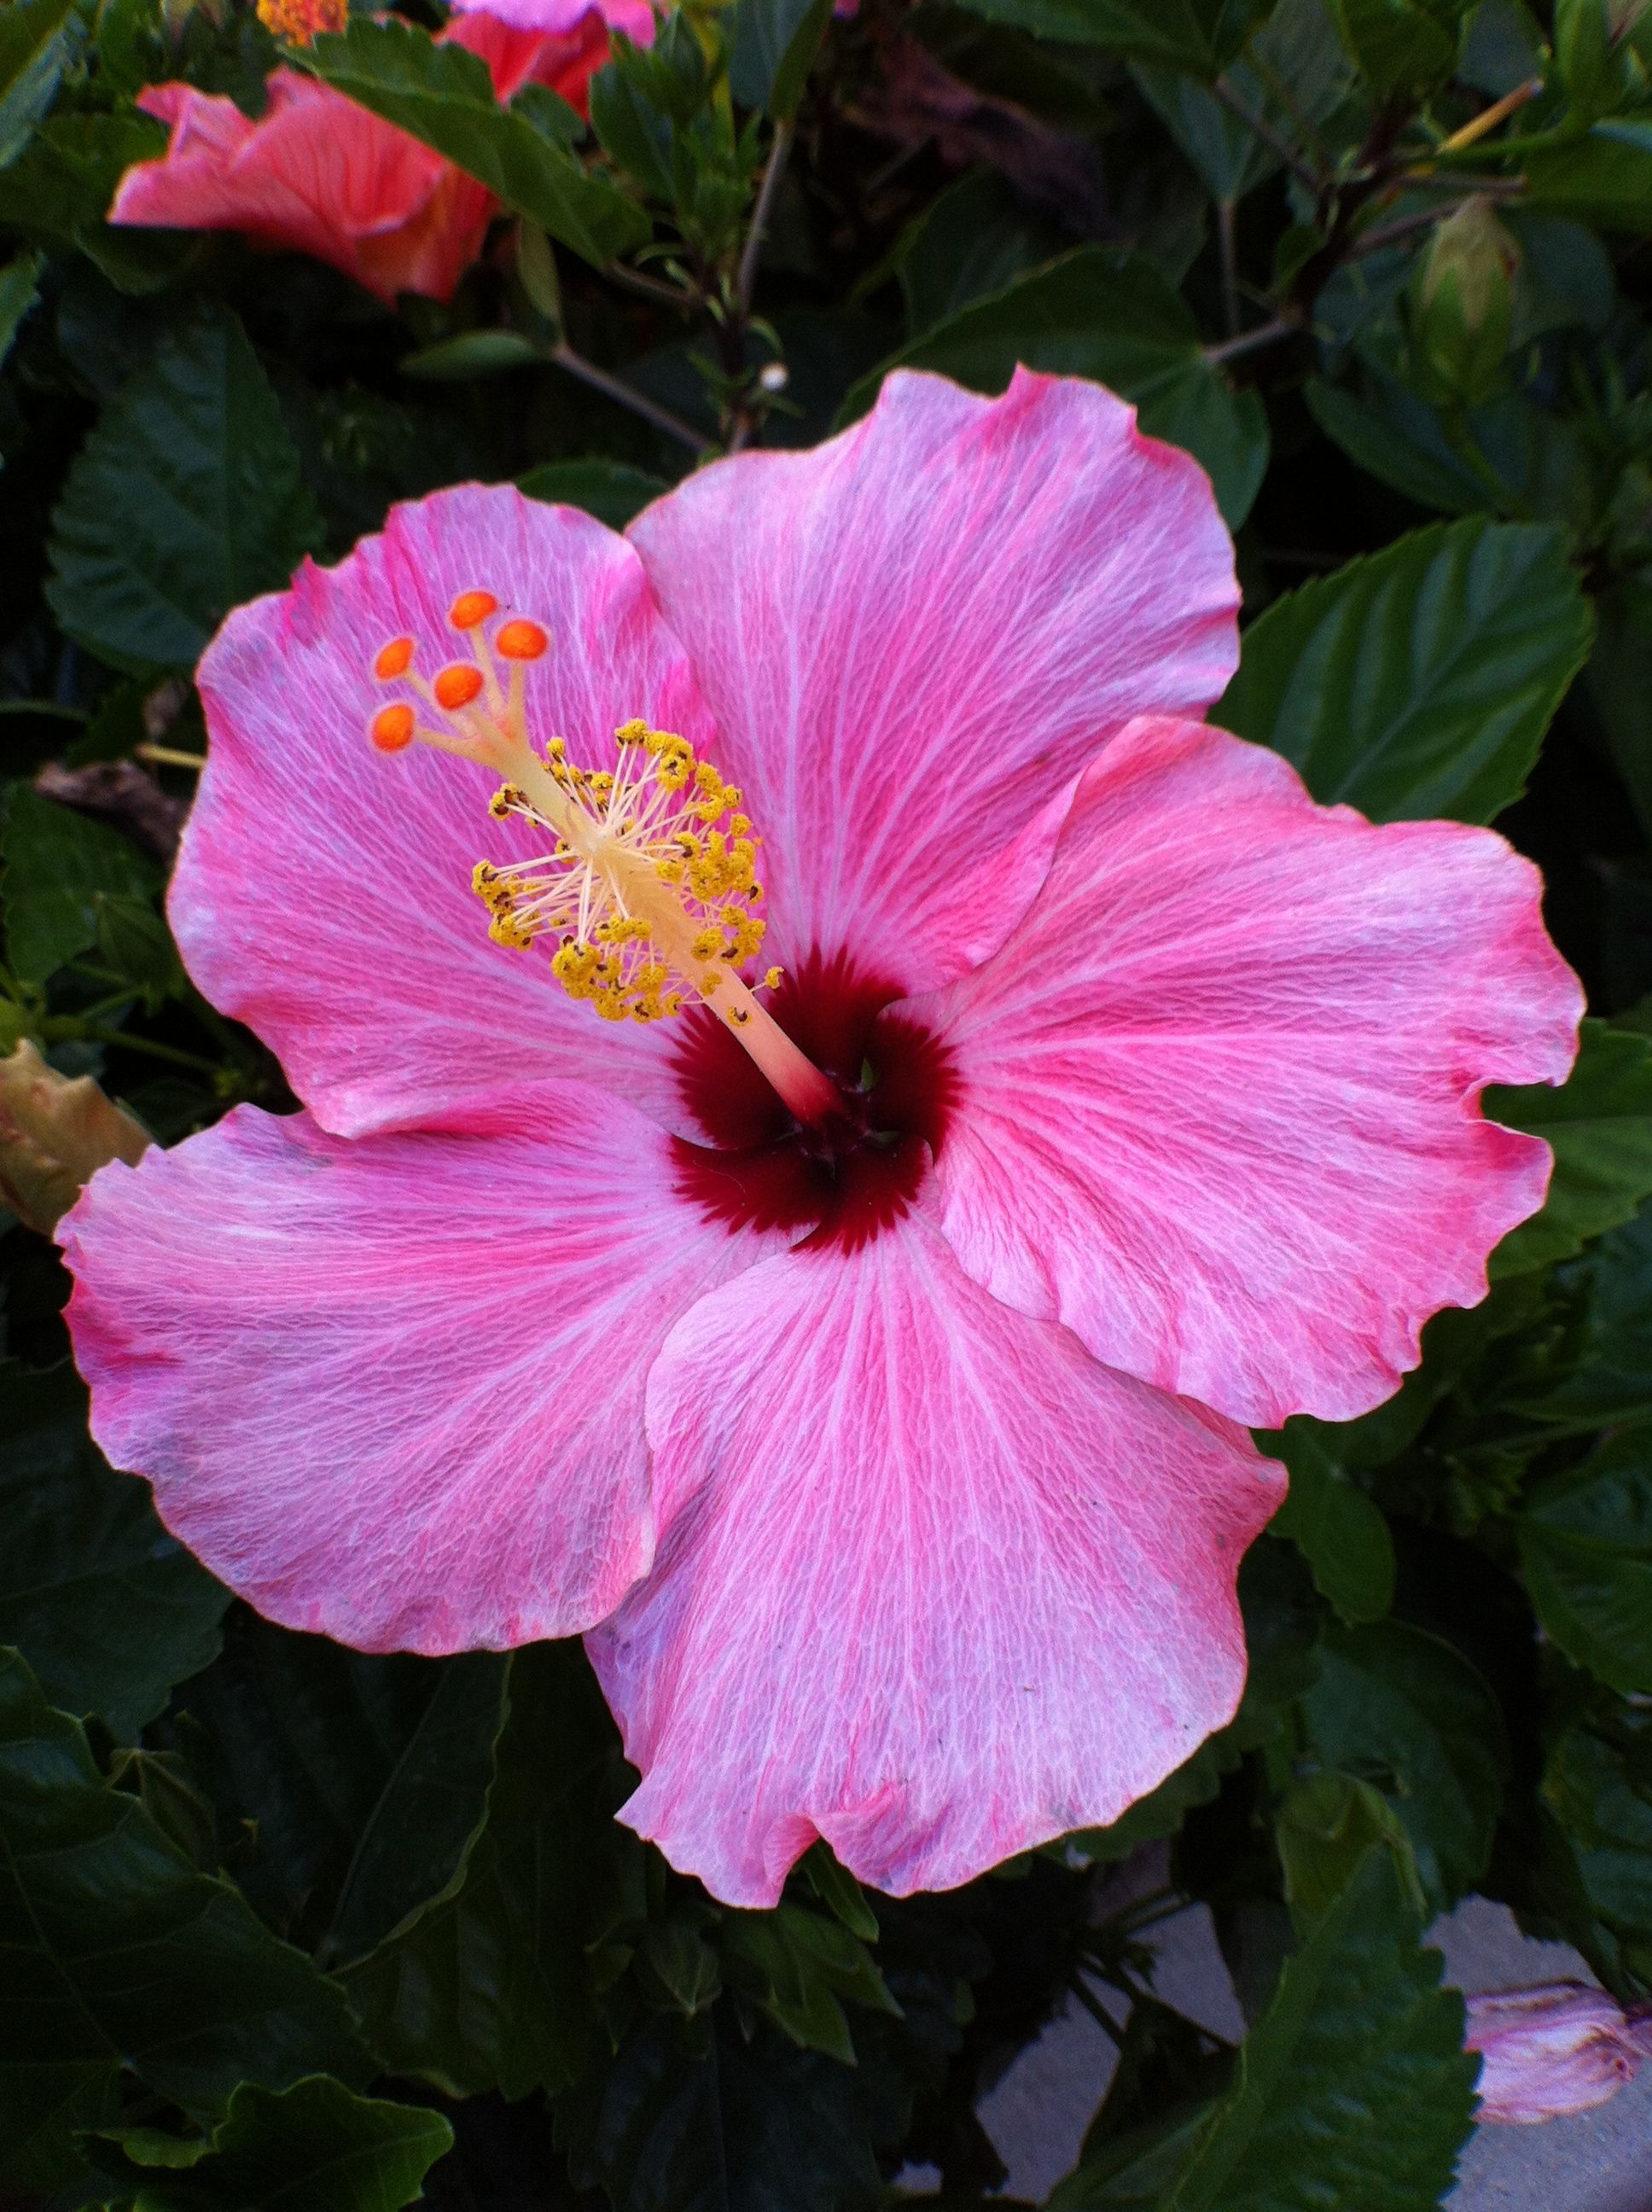 Hibiscus Florida s second state flower orange blossom is the official